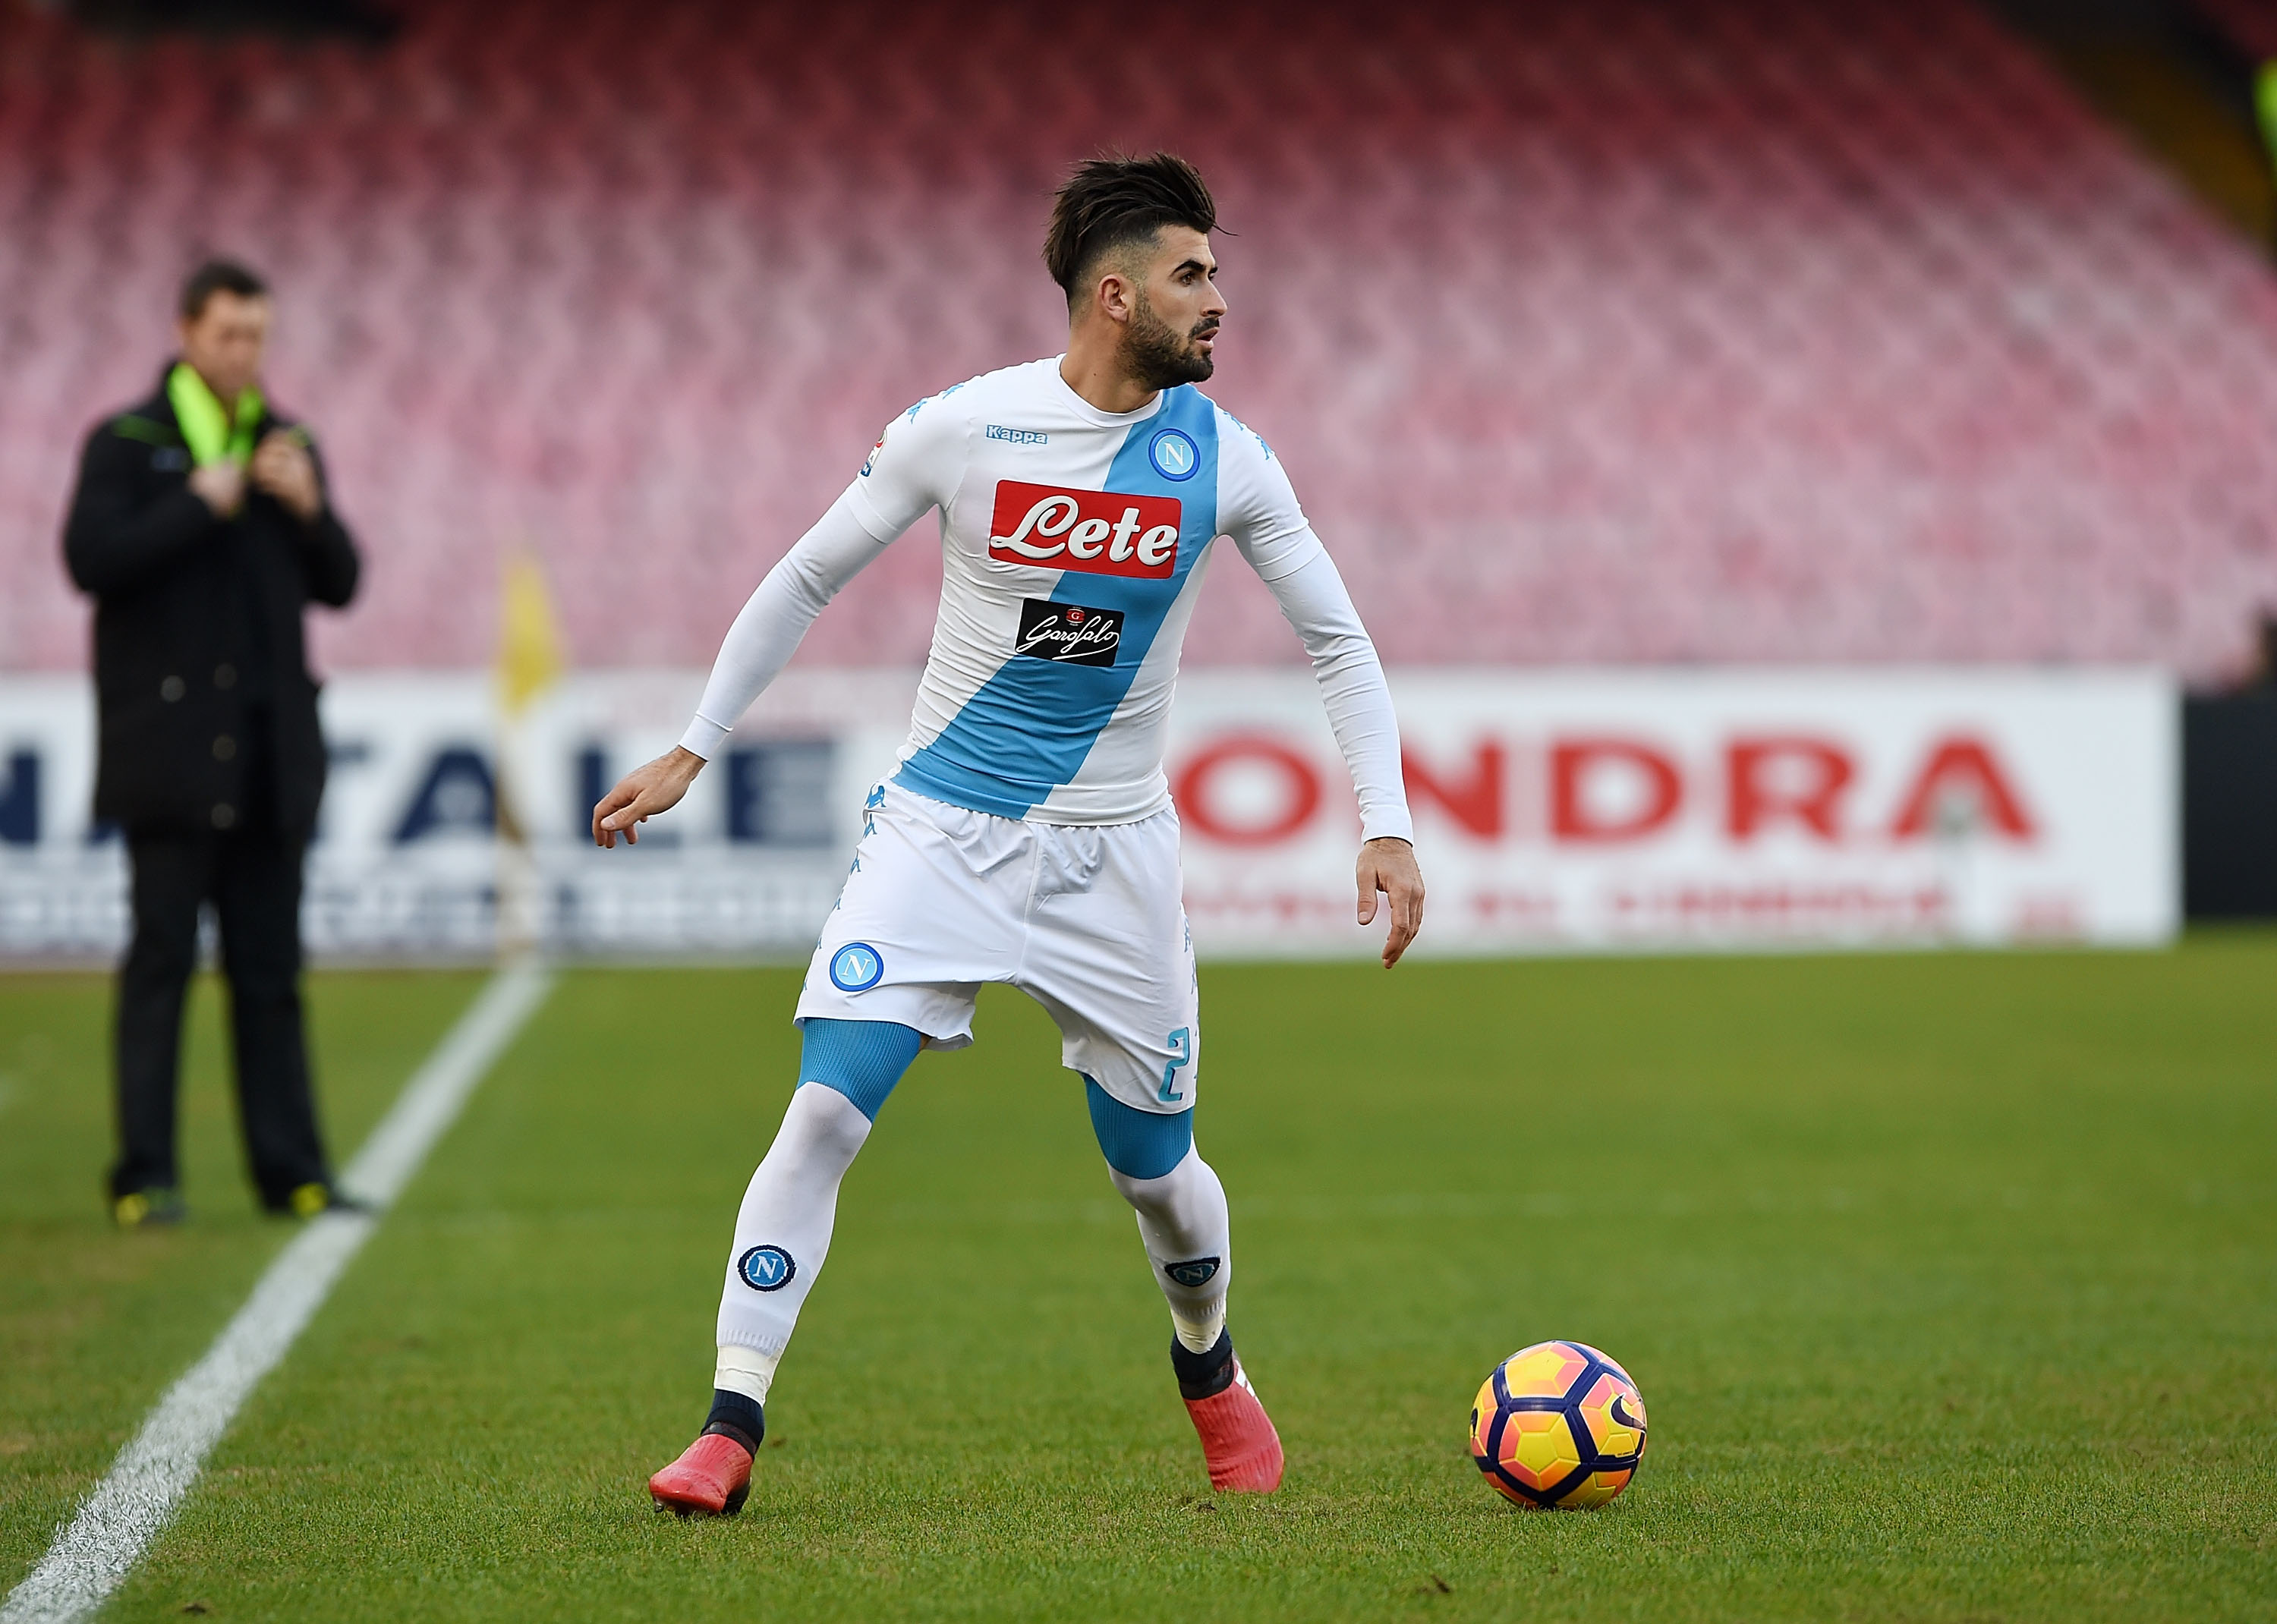 NAPLES, ITALY - DECEMBER 18: Elseid Hysaj of SSC Napoli in action during the Serie A match between SSC Napoli and FC Torino at Stadio San Paolo on December 18, 2016 in Naples, Italy. (Photo by Francesco Pecoraro/Getty Images)